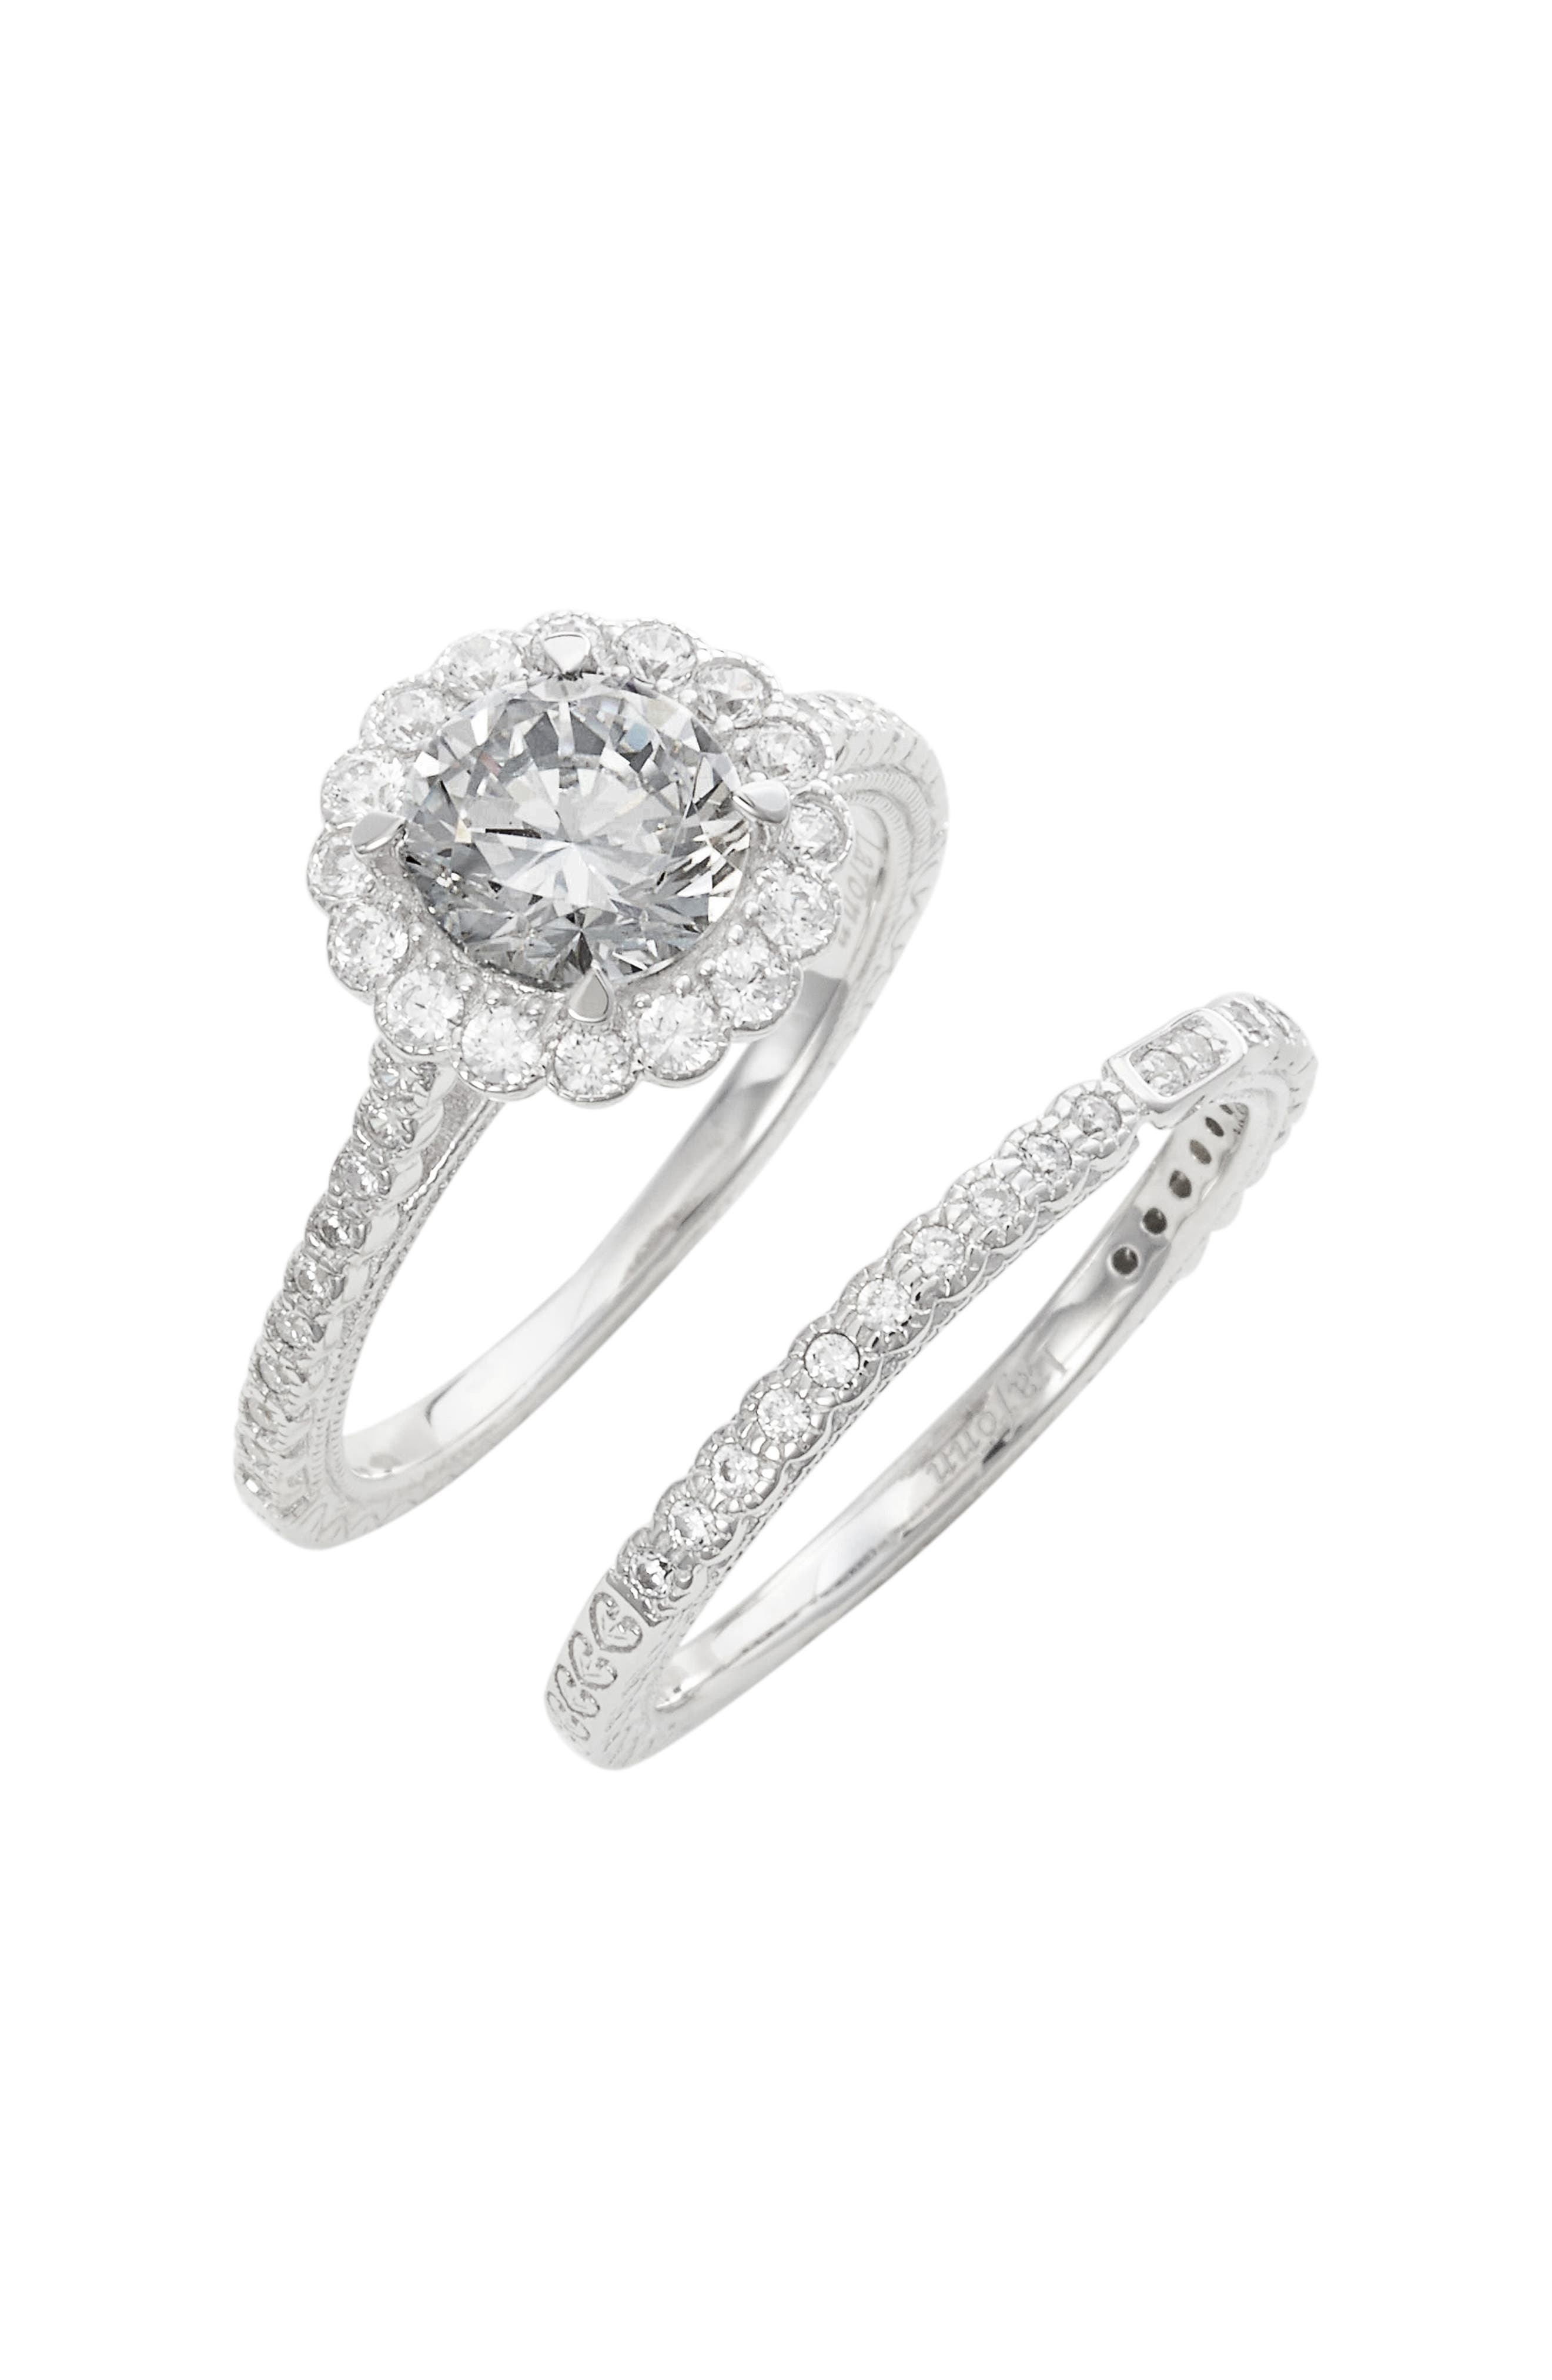 Simulated Diamond Engagement Ring and Band,                         Main,                         color,